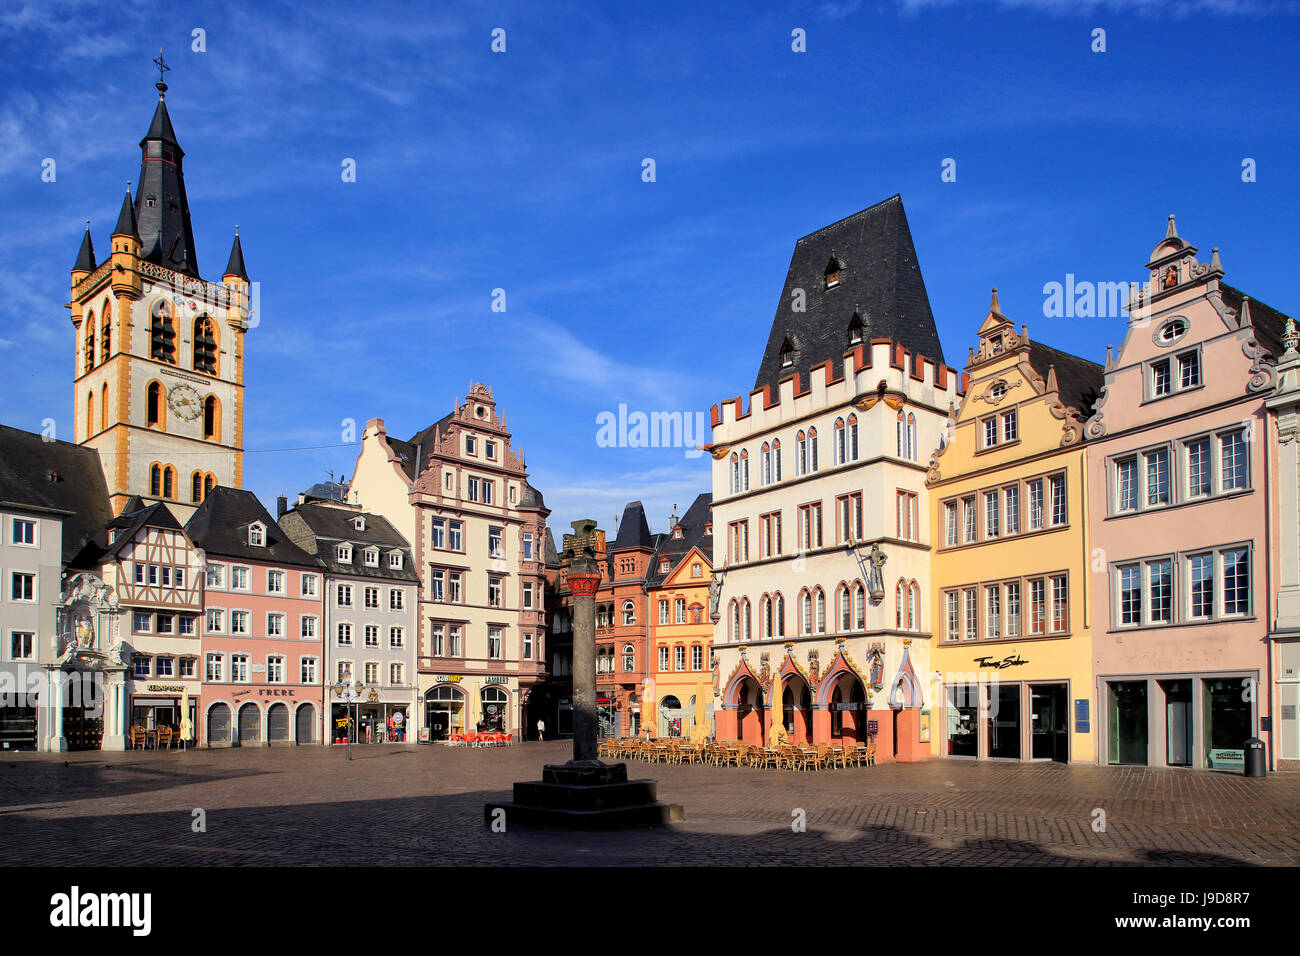 Hauptmarkt, Main Market Square, with St. Gangolf Church and Steipe Building, Trier, Moselle River, Rhineland-Palatinate, - Stock Image